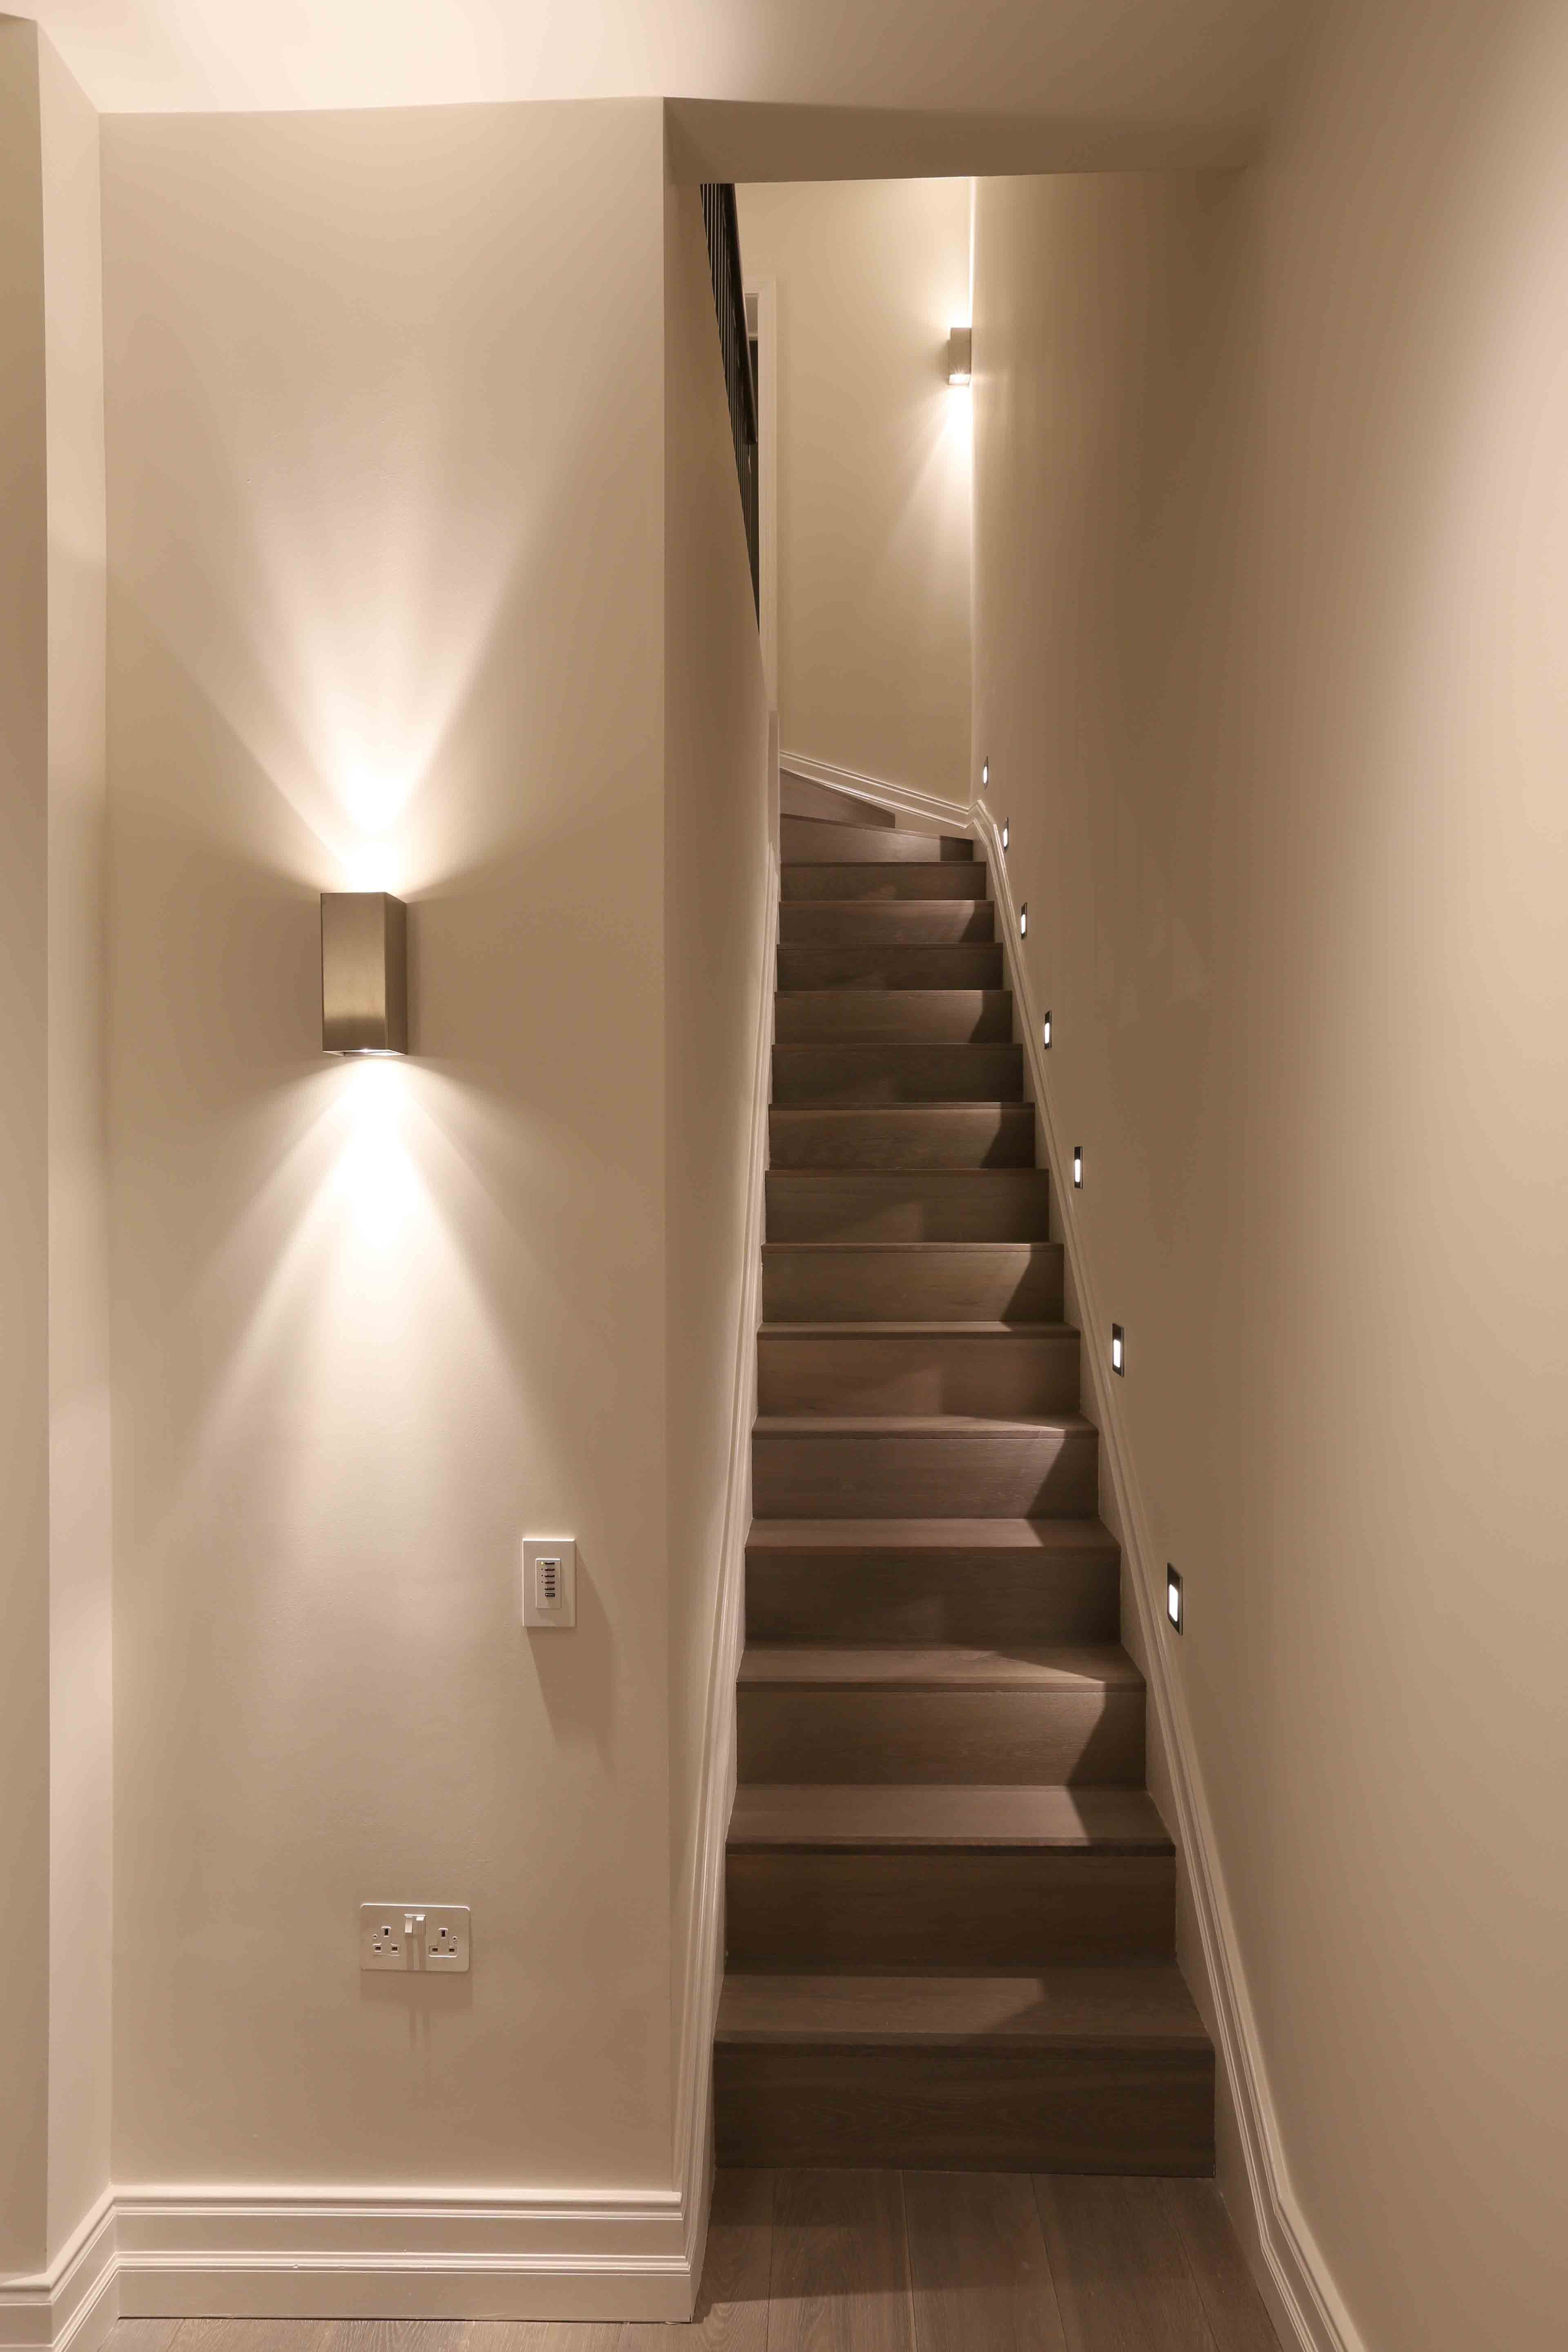 Lighting Basement Washroom Stairs: Staircase Lighting Design By John Cullen Lighting